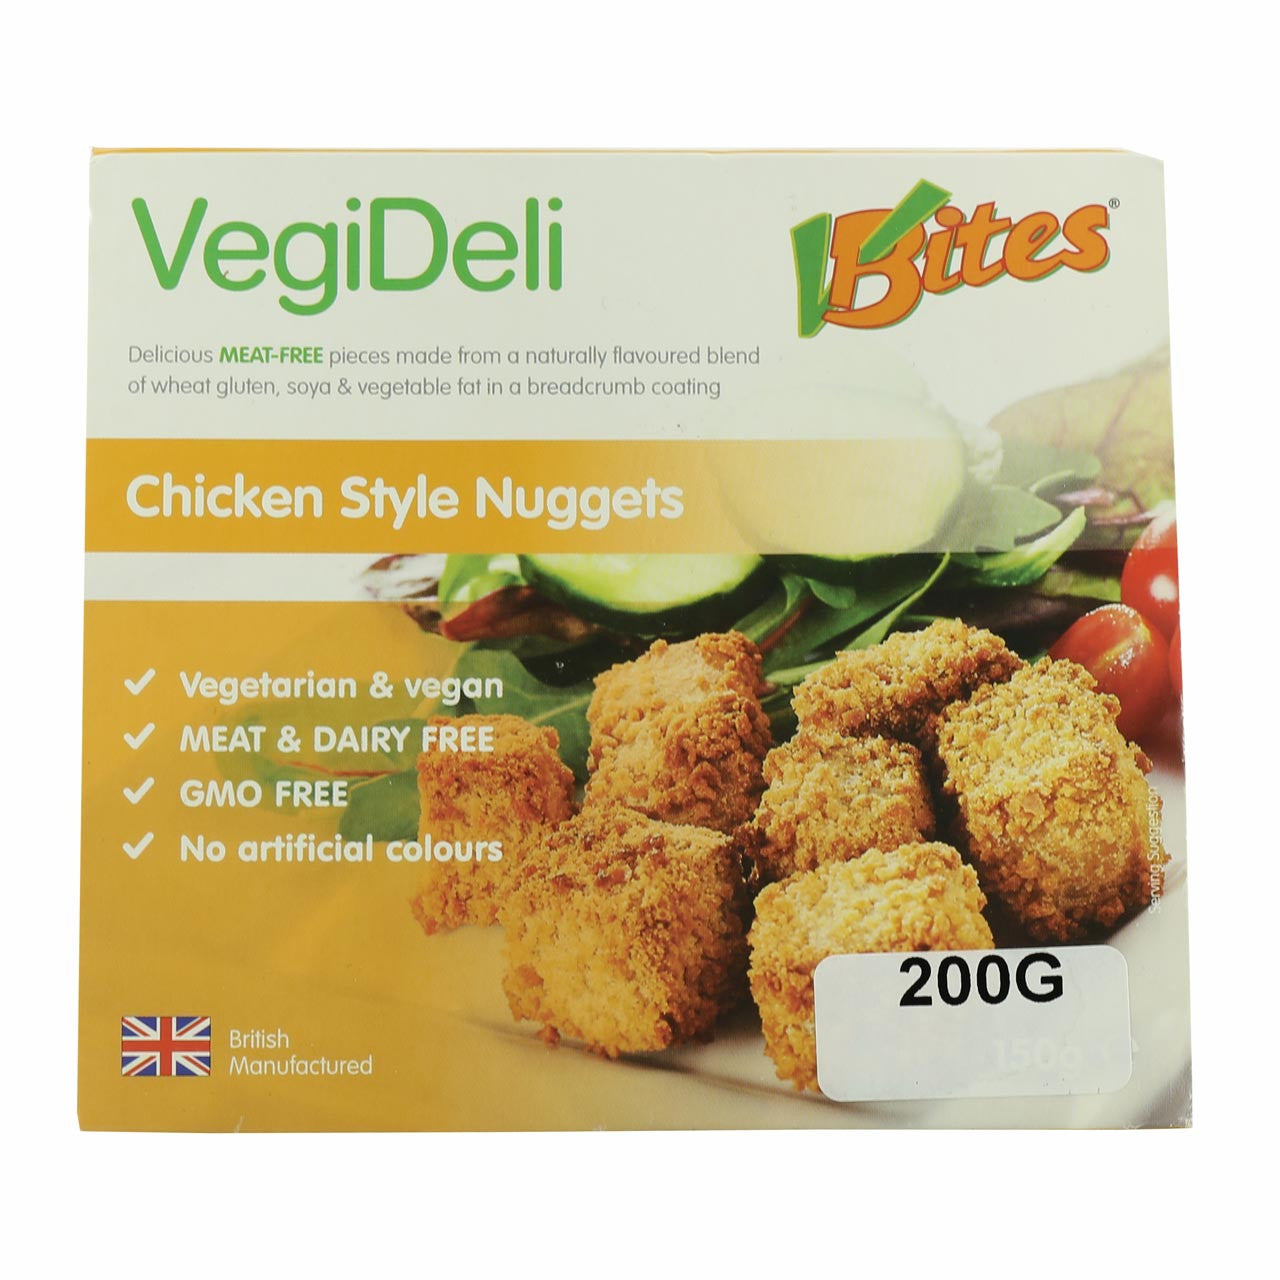 VBites Chicken Style Nuggets